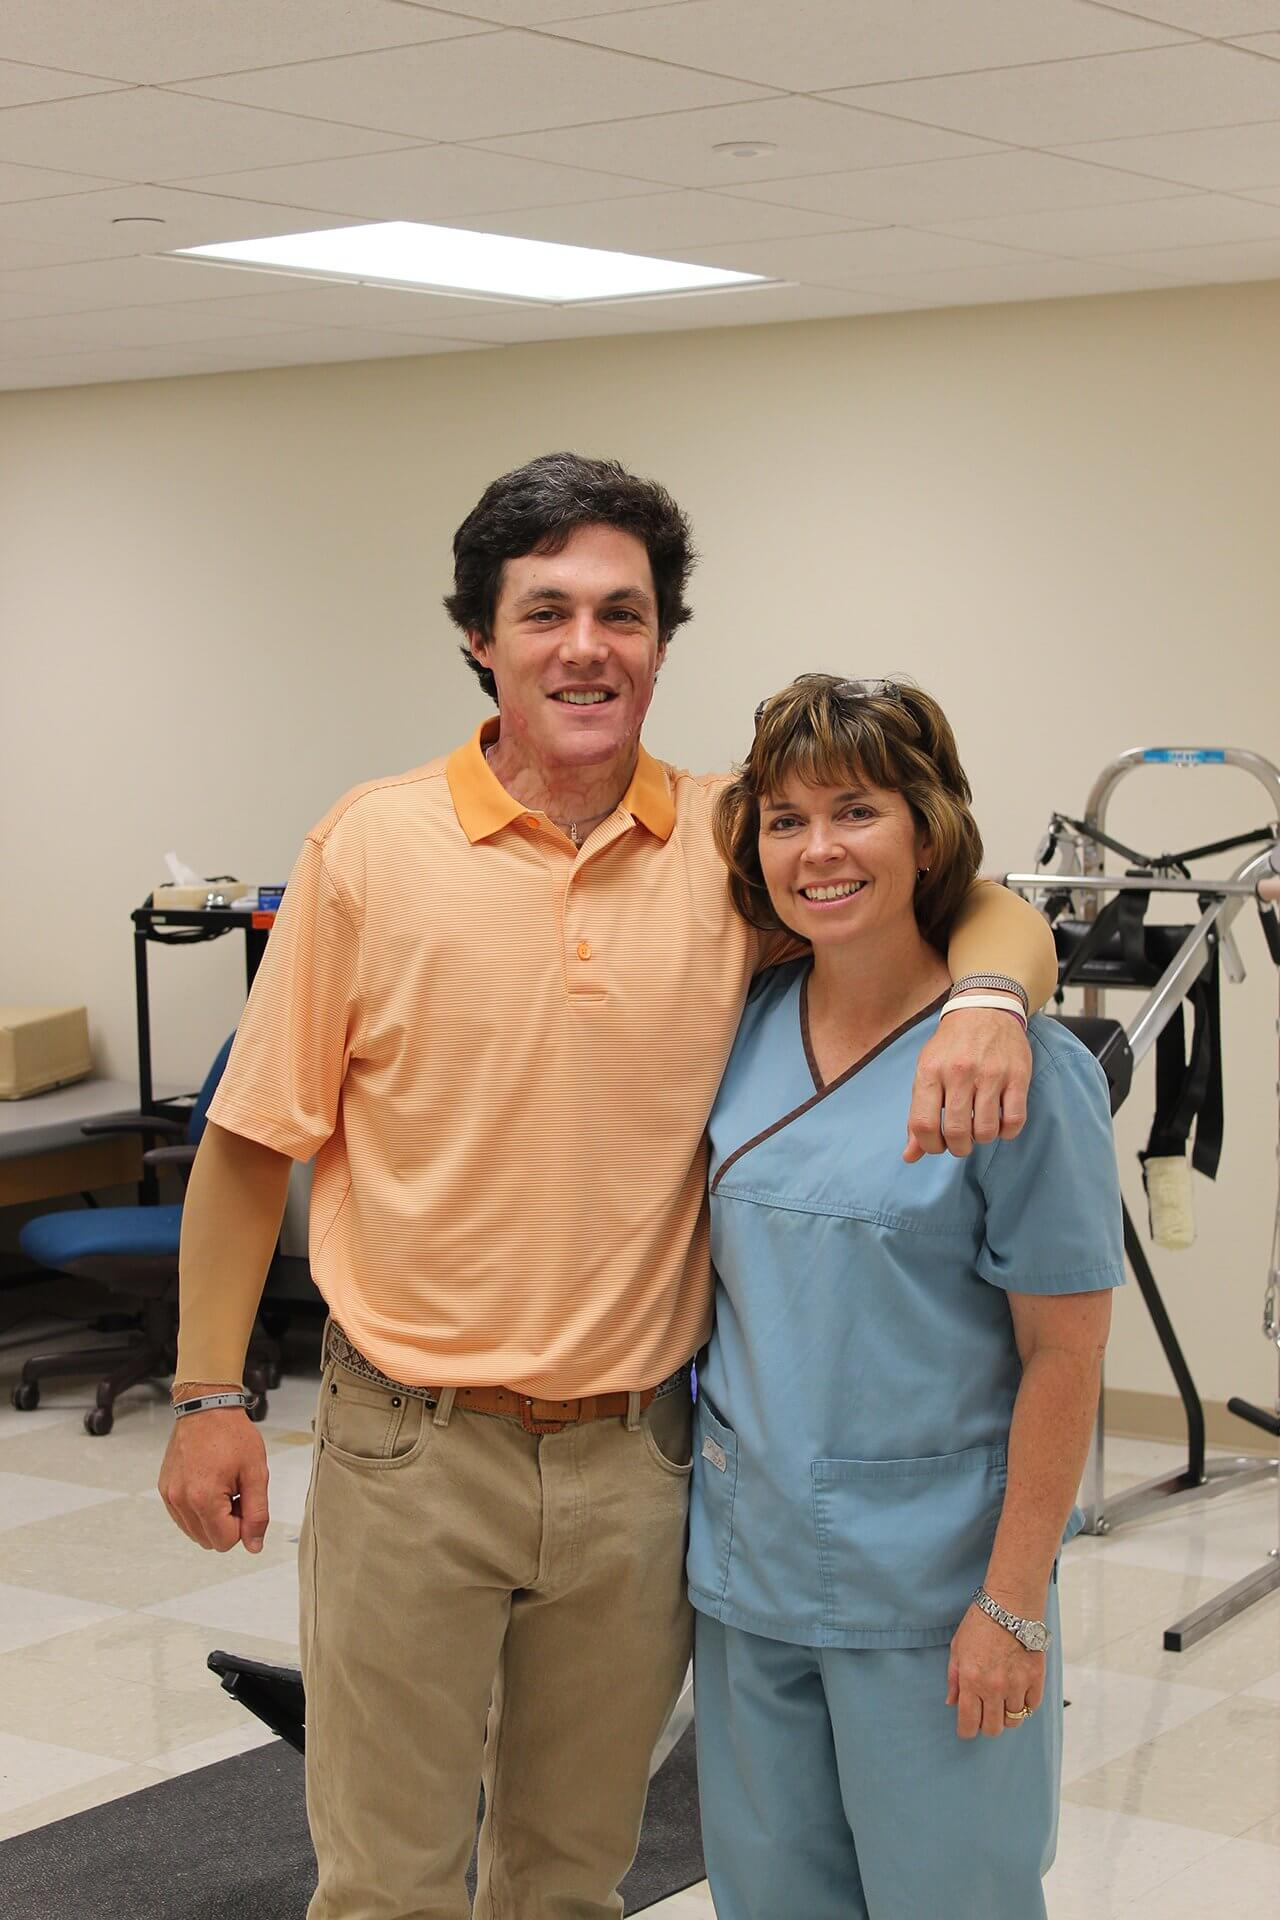 James Burke, left, poses for a picture with his occupational therapist Kimberly Walker, OTR, in the rehabilitation gym at Memorial Hermann-Texas Medical Center